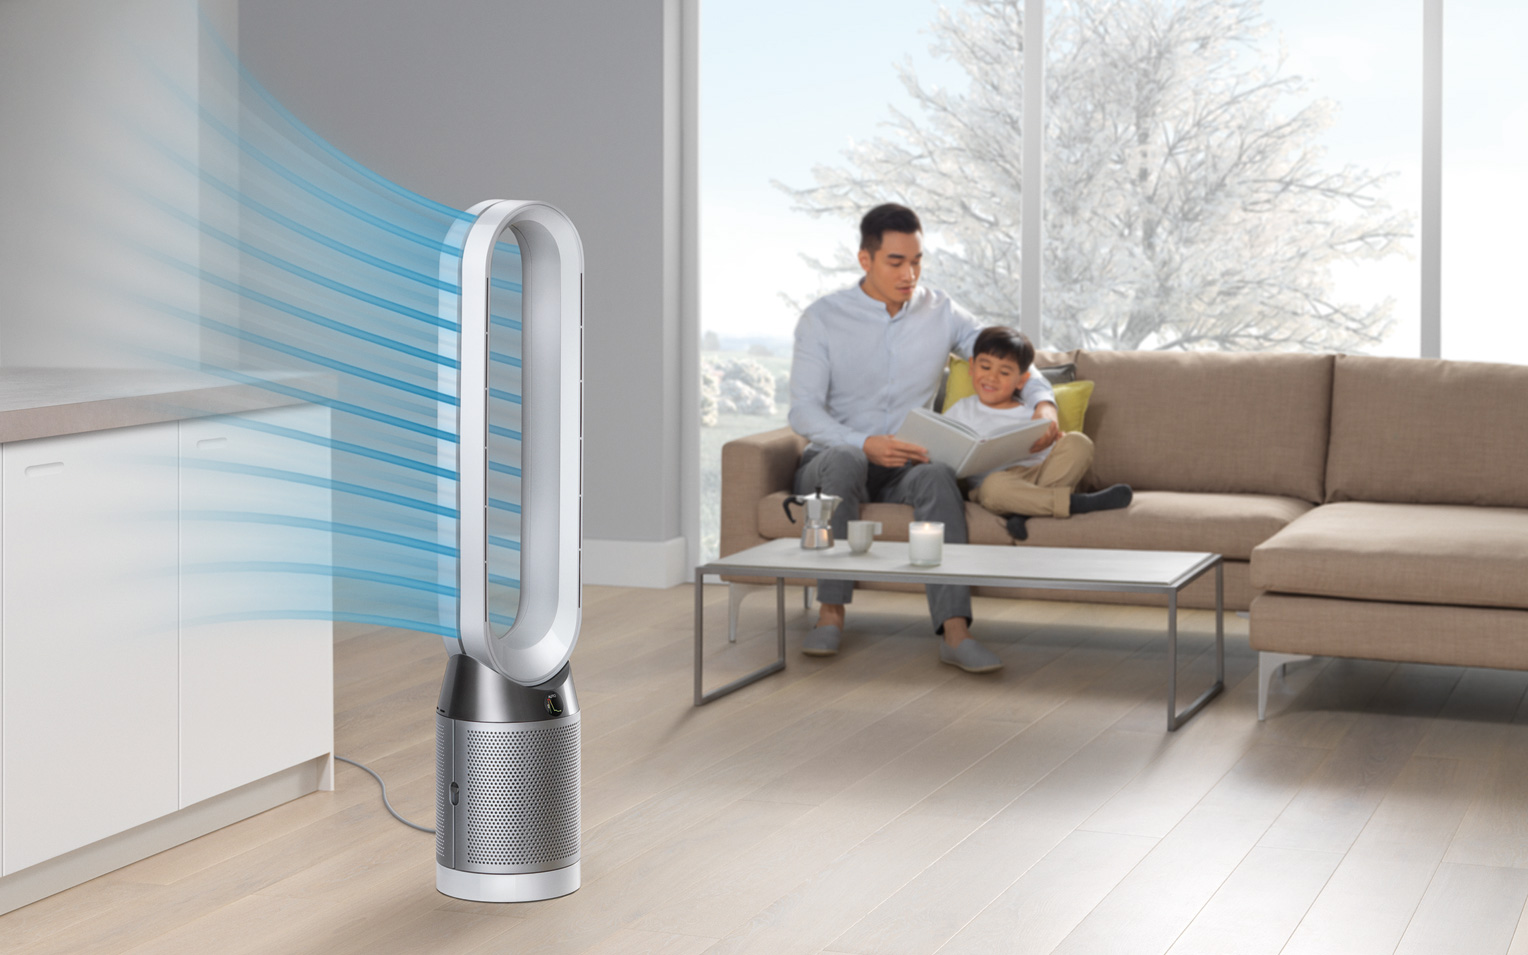 Dyson S Latest Fans Can Purify Air Without Blowing At You